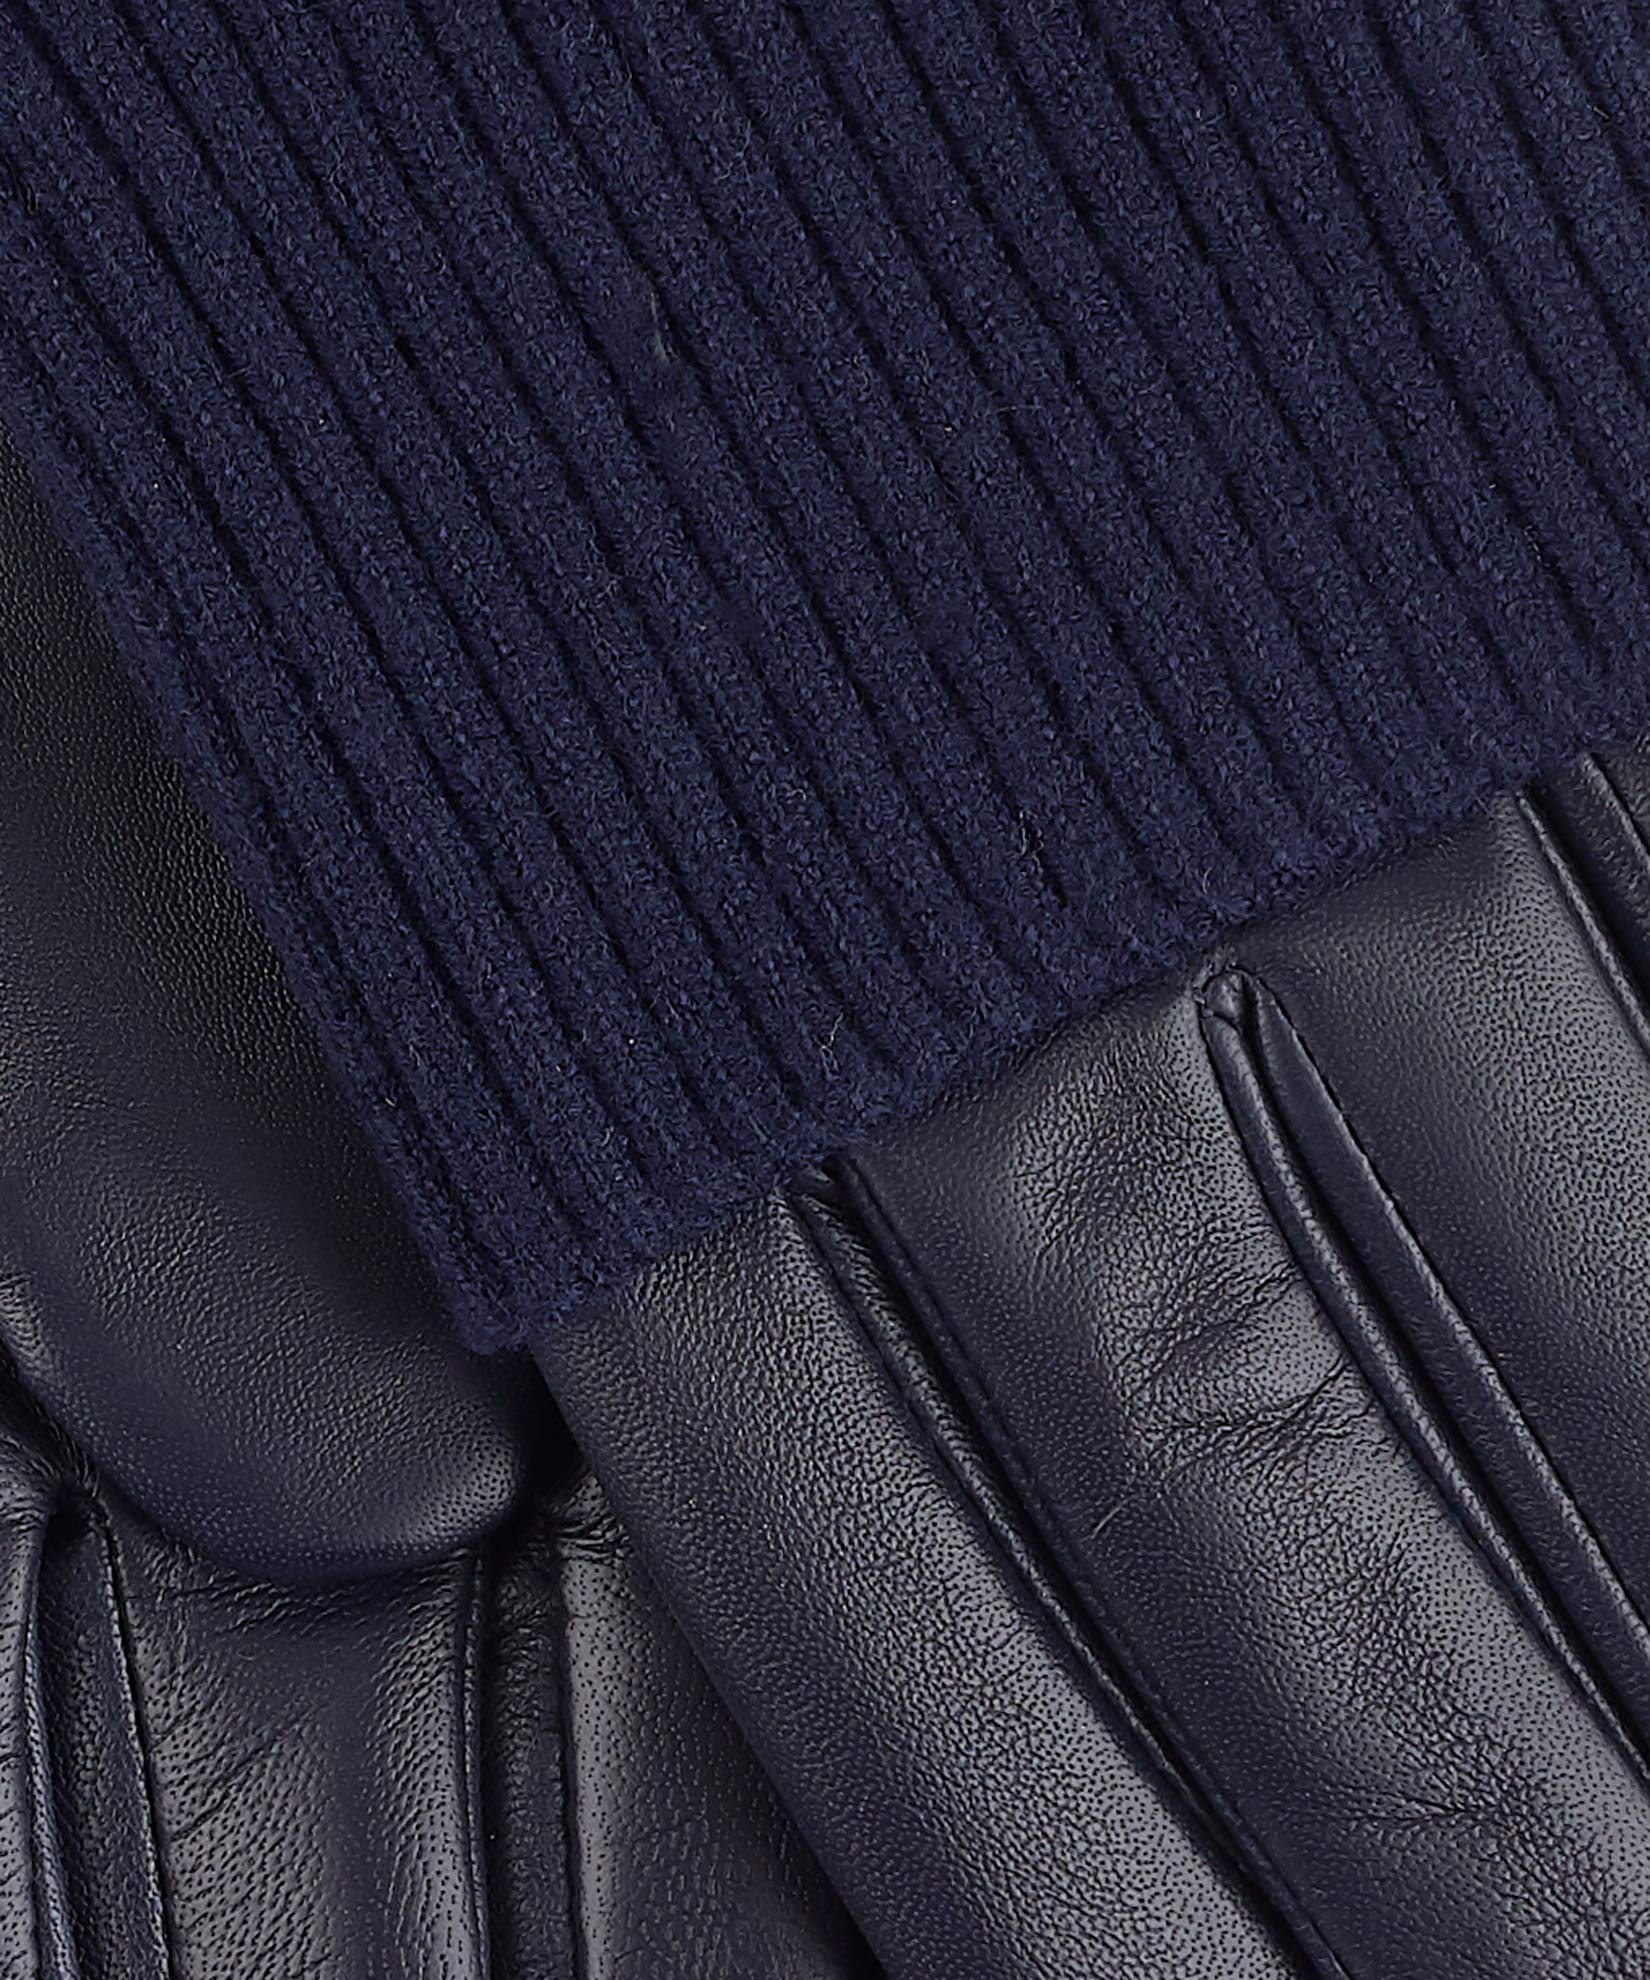 Navy - Fold Down Cuff Glove